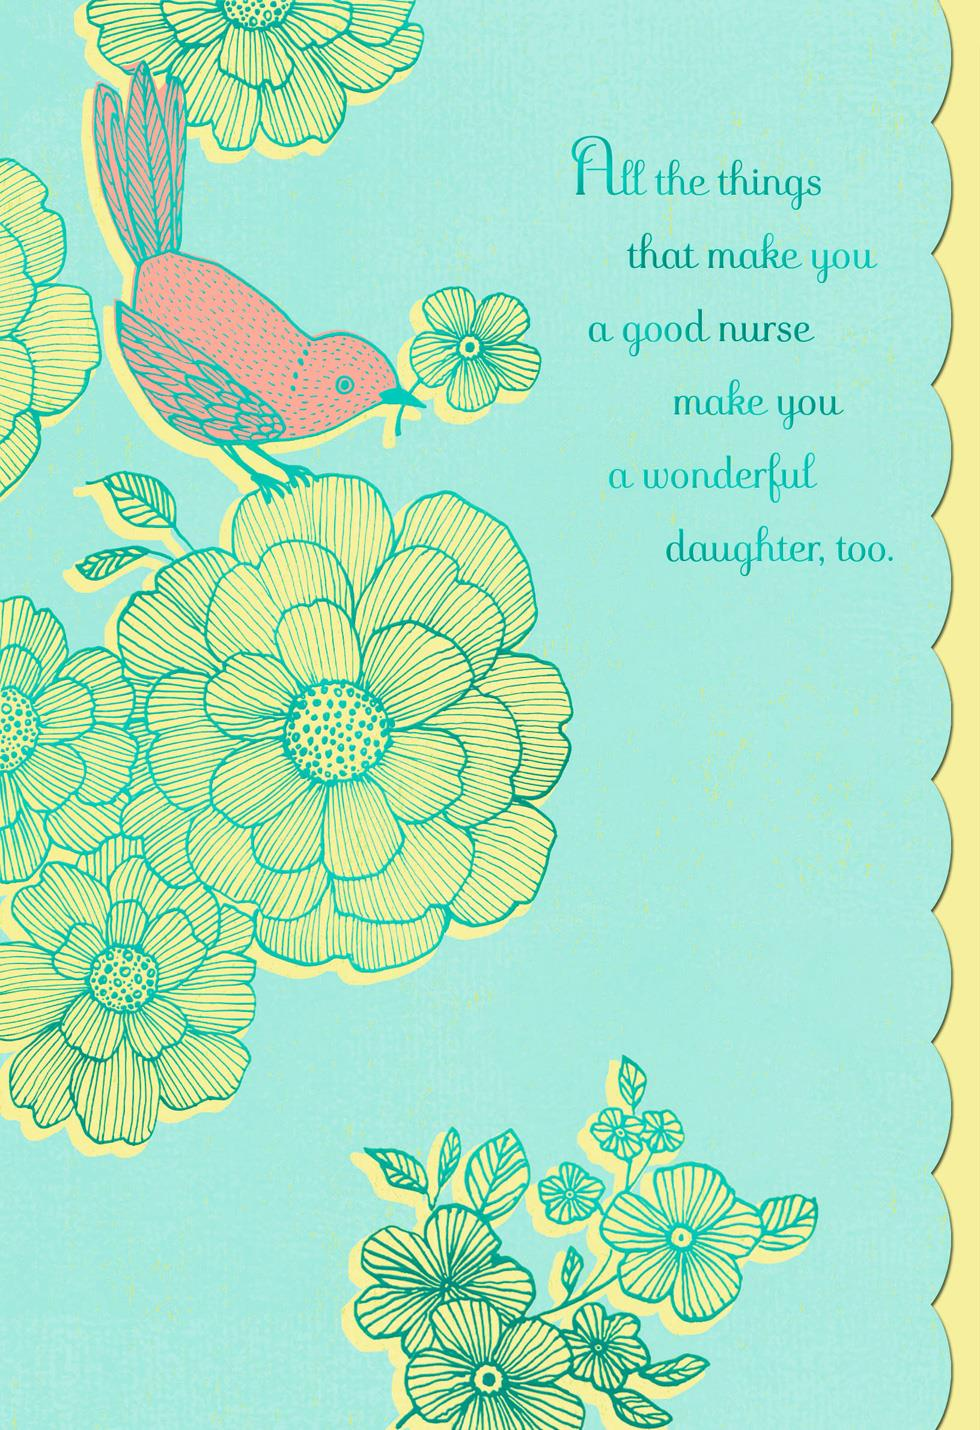 Nurses day cards hallmark love and pride for nurse daughter nurses day card m4hsunfo